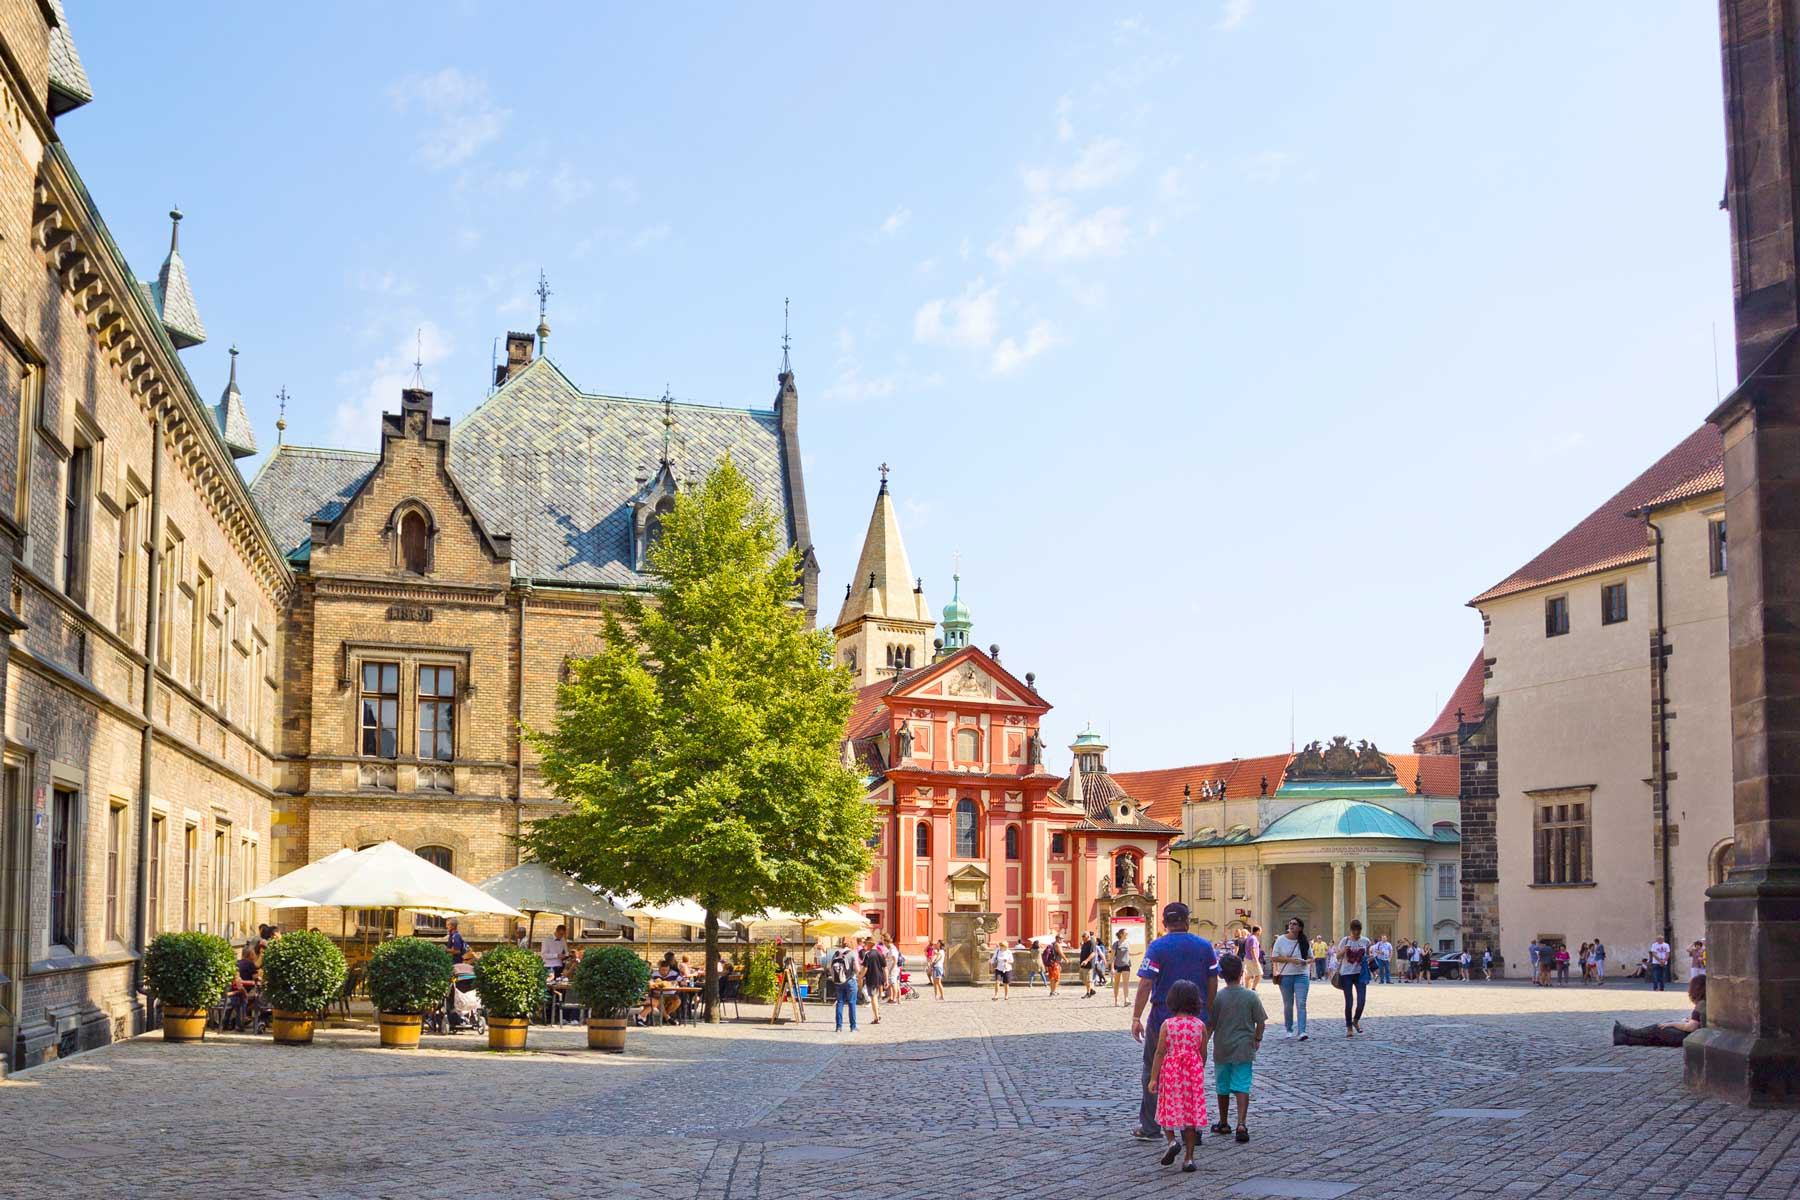 People sightseeing in the yard of Prague Castle, which is official residence of the President of the Czech Republic